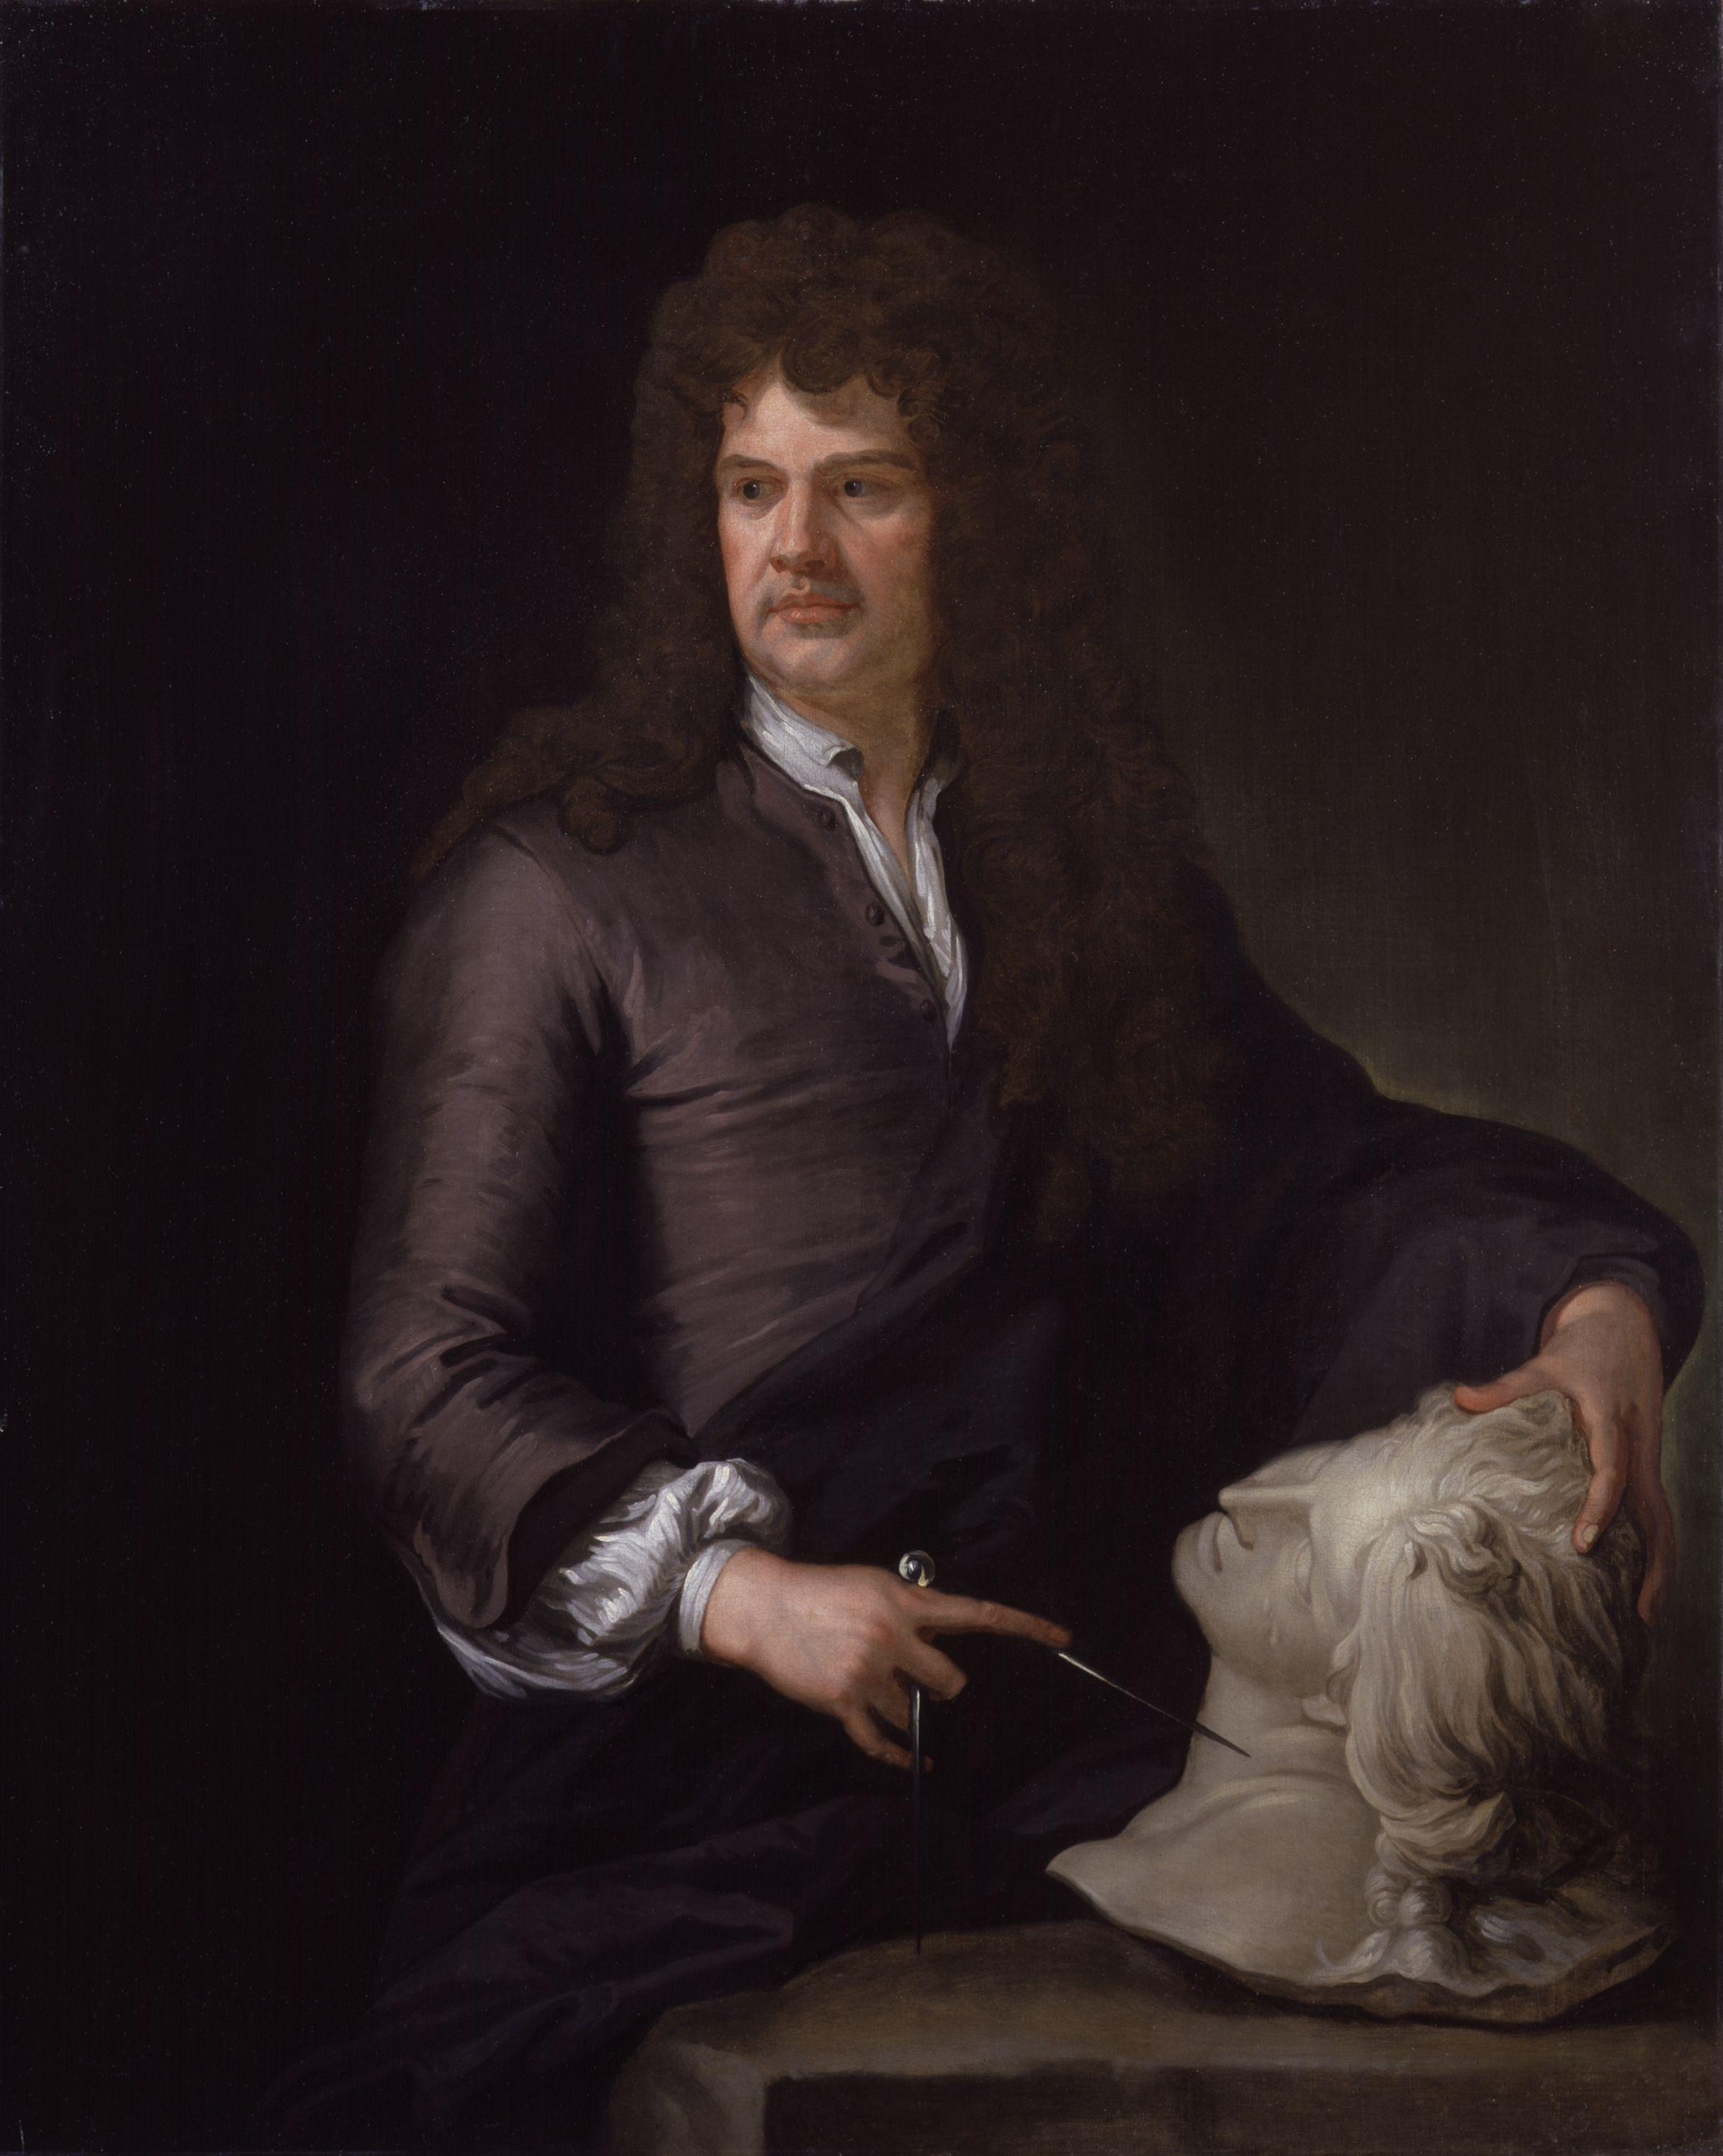 Godfrey Kneller. Grinling Gibbons. ca. 1690.  Oil on Canvas. National Portrait Gallery, London. 2925